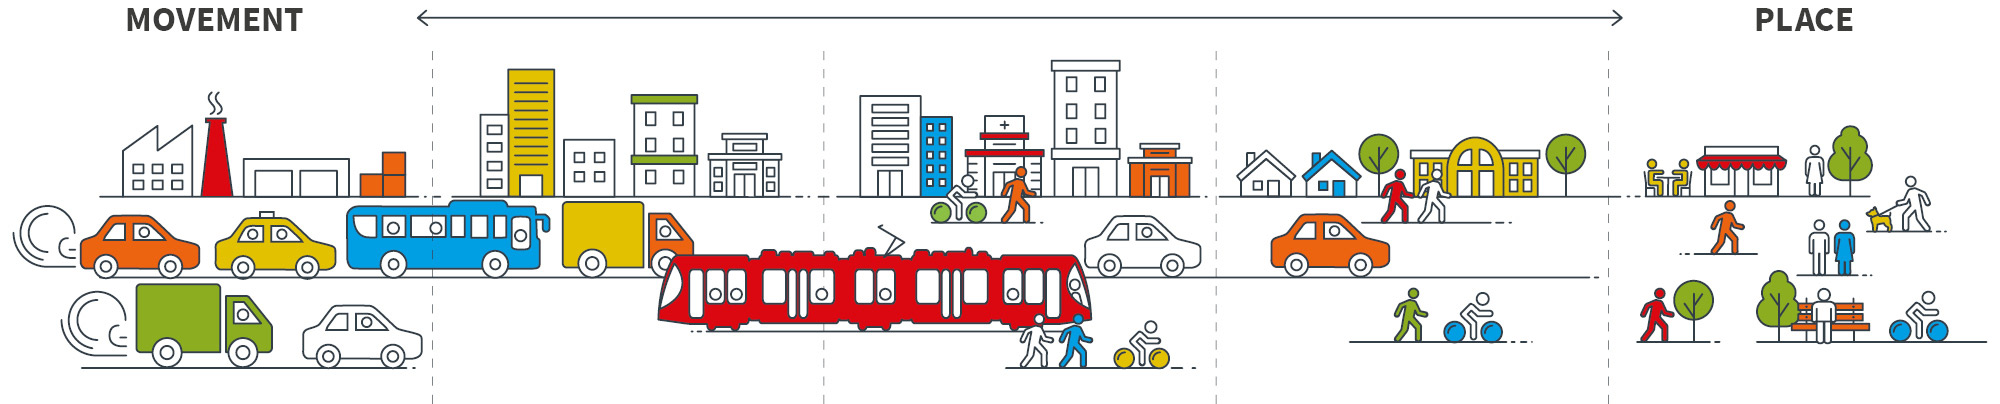 The diagram is describing the different types of streets and places we have in a city which include high intensity vehicular roads at one end of the scale and places for people at the other. The diagram indicates buildings, cars and buses, a light rail carriage and people walking and cycling.  The diagram includes motorways which are strategically significant, roads that move people and goods rapidly over long distances; Movement corridors which provide safe, reliable and efficient movement of people and goods between regions and strategic centres; Vibrant streets which have a high demand for movement as well as place with a need to balance different demands within available road space; Local streets are part of the fabric of the suburban neighbourhoods where we live our lives and facilitate local community access; Places for people which are streets with high demand for activities and lower levels of vehicle movement. They create places people enjoy, attract visitors, and are places communities value.